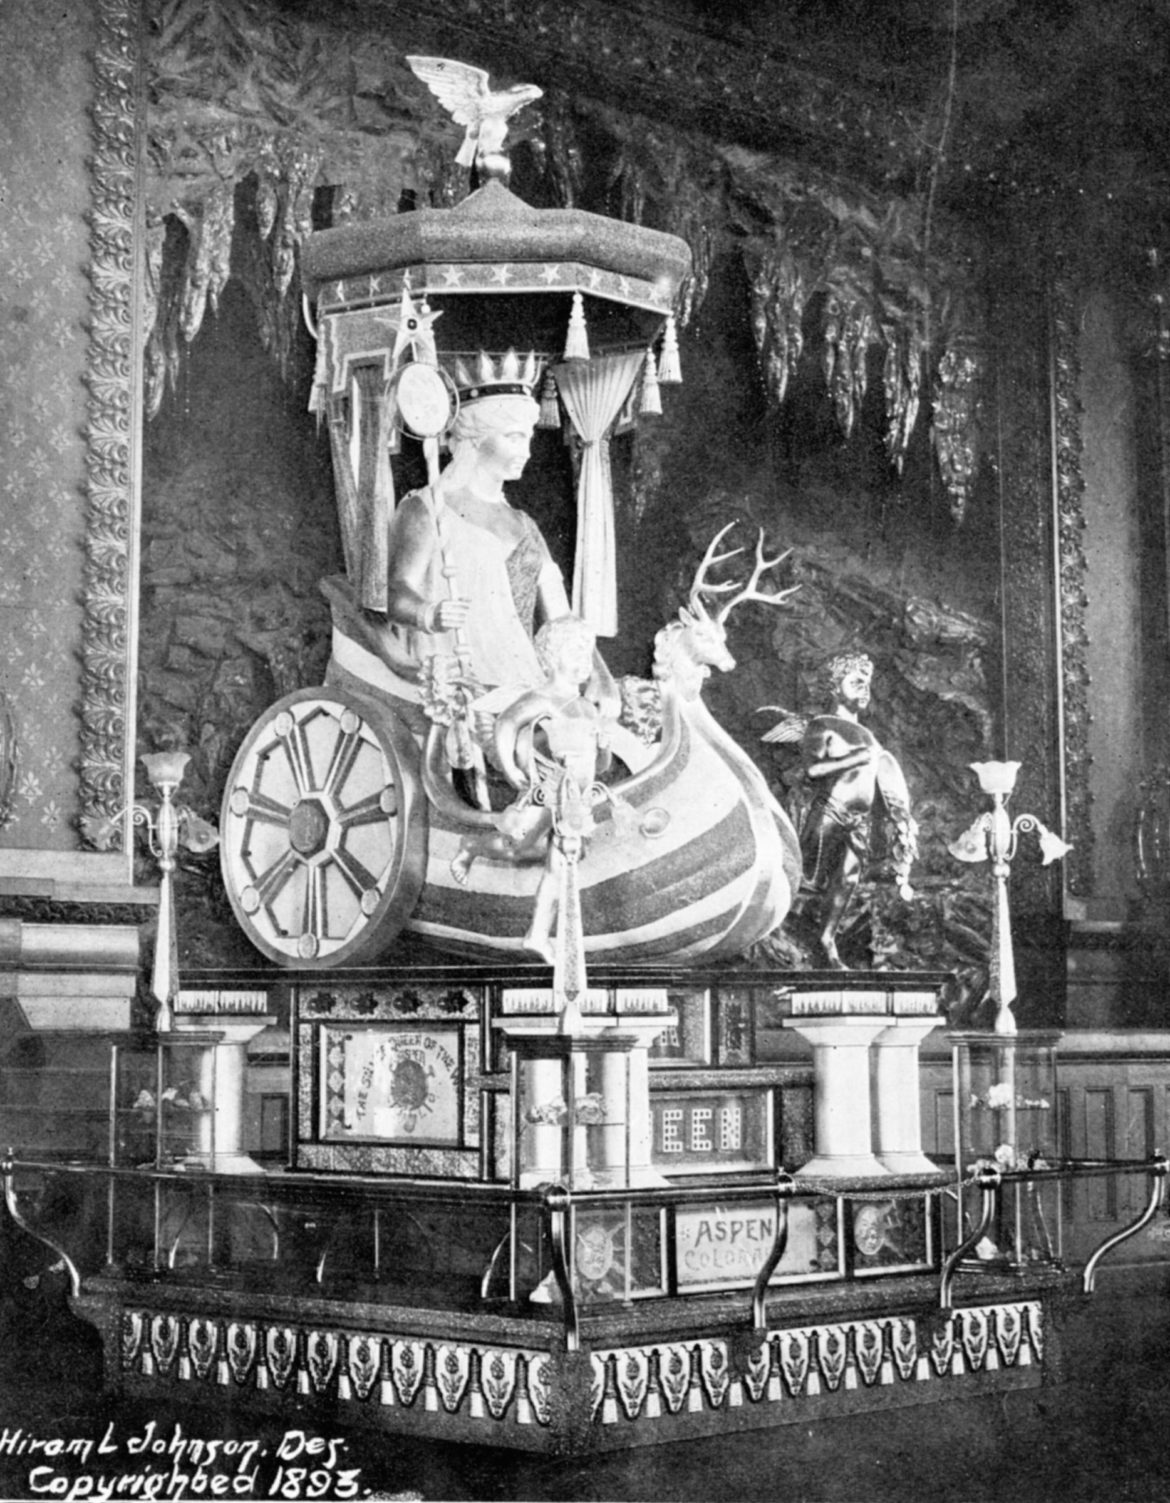 The Silver Queen statue on display at the Pueblo Mineral Palace in 1893 before being shipped to Aspen for viewing and then on to the Chicago World's Fair. The Queen's disappearance after the fair has been an Aspen mystery to this day.